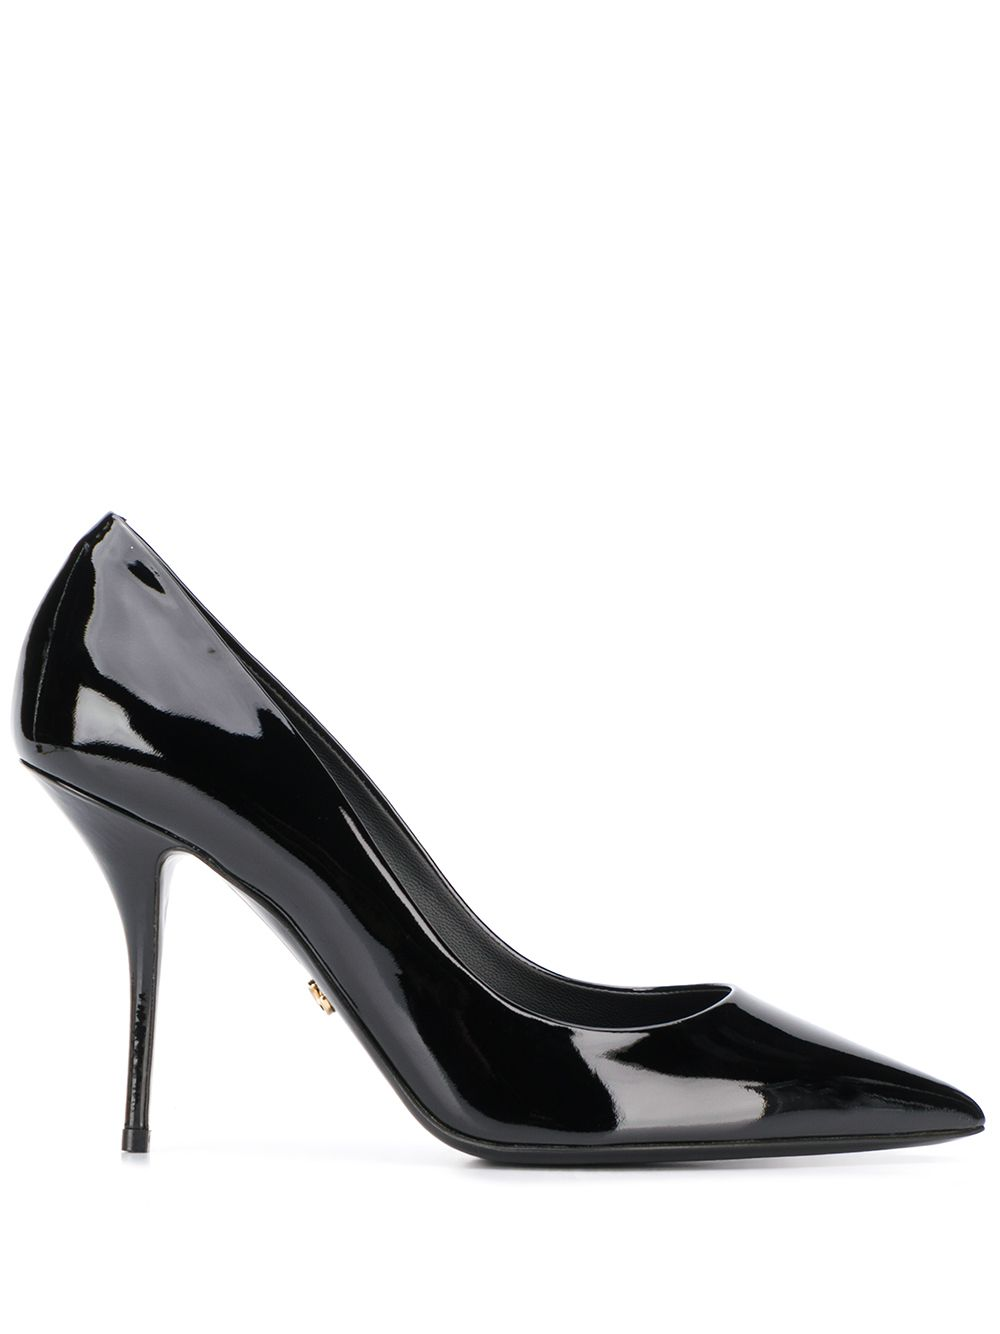 Dolce & Gabbana polished leather pointed pumps - Black von Dolce & Gabbana